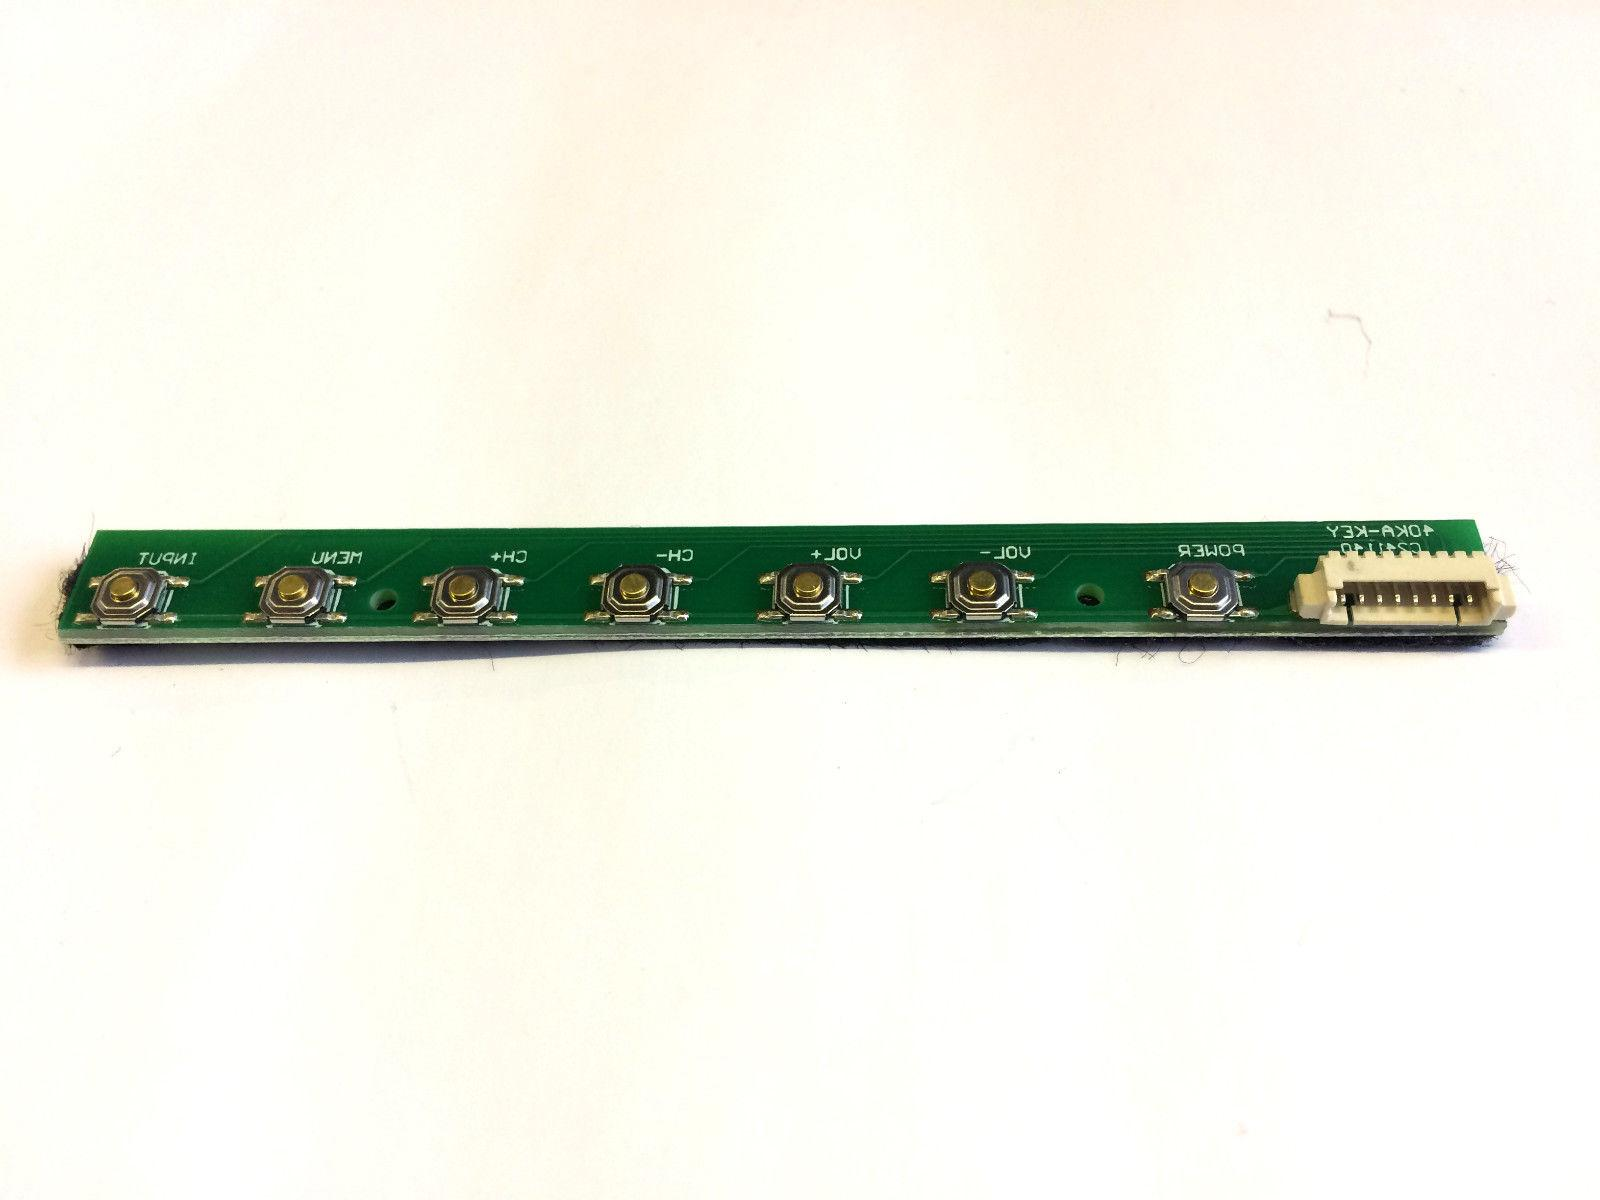 c32ansmt 32 inch del tv function button